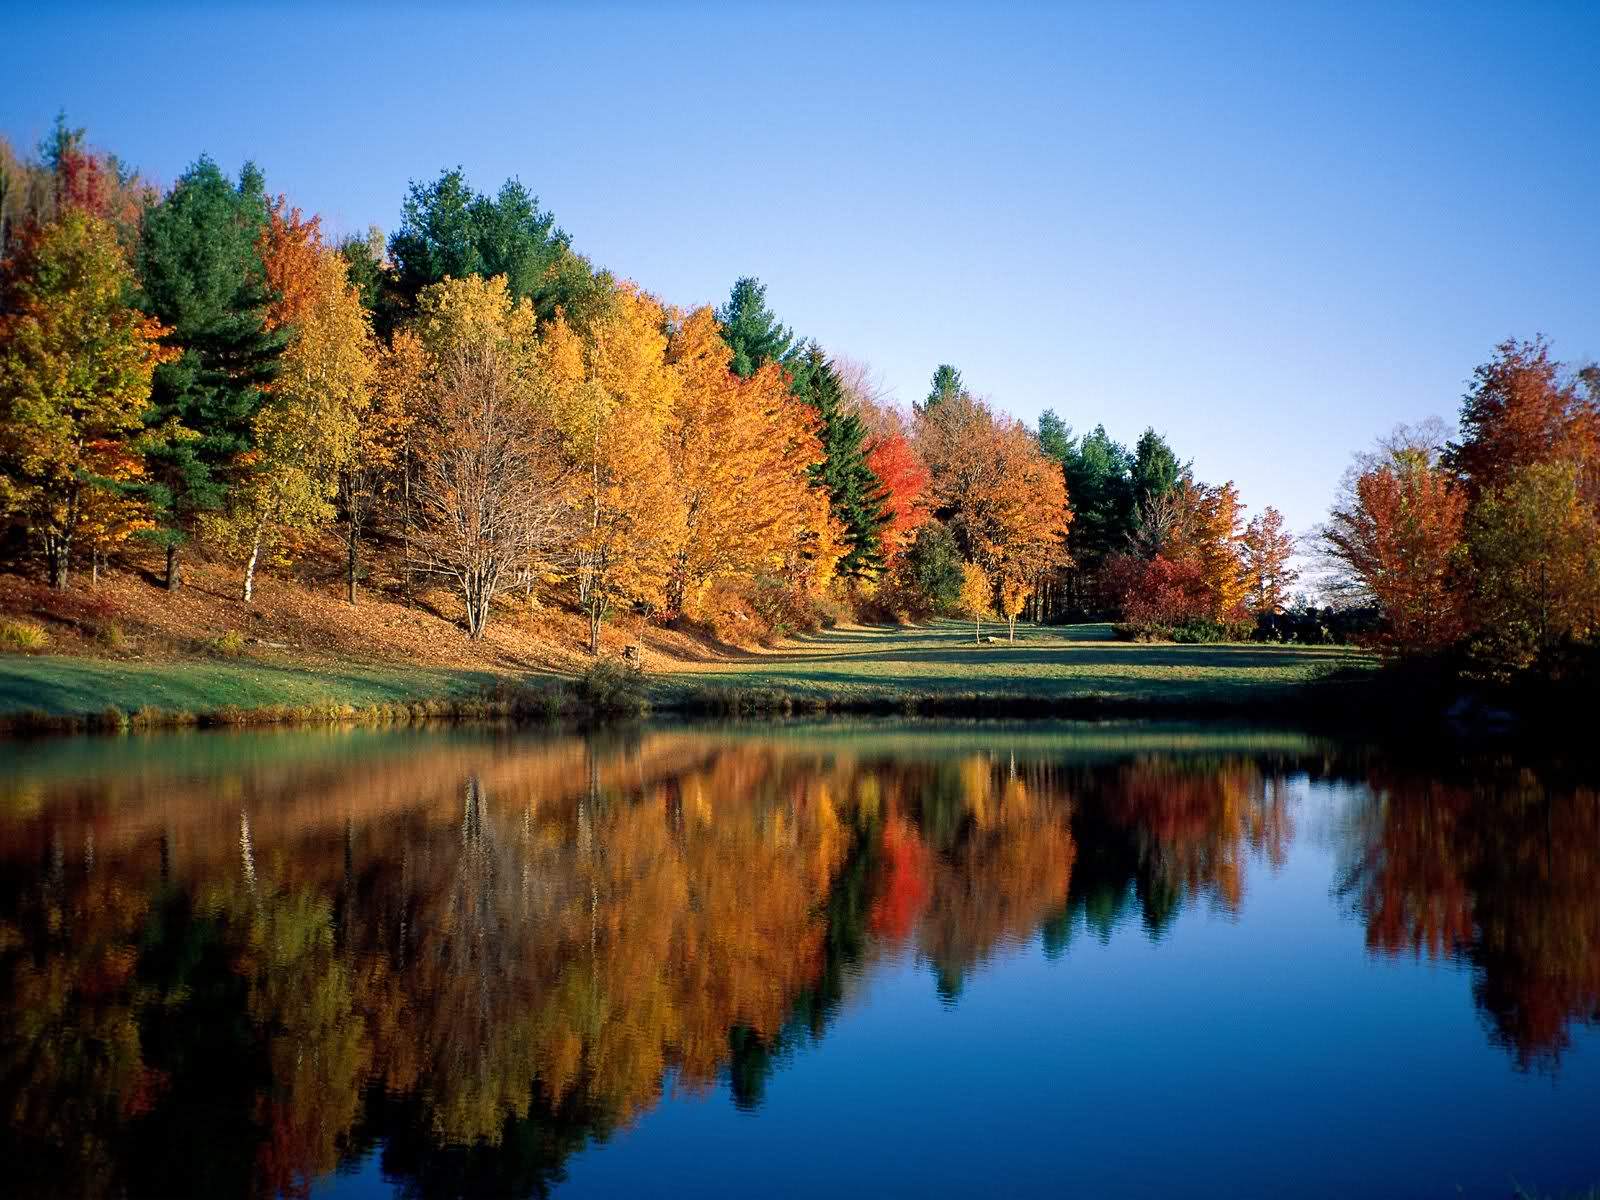 early fall wallpaper Gallery 49 images 1600x1200